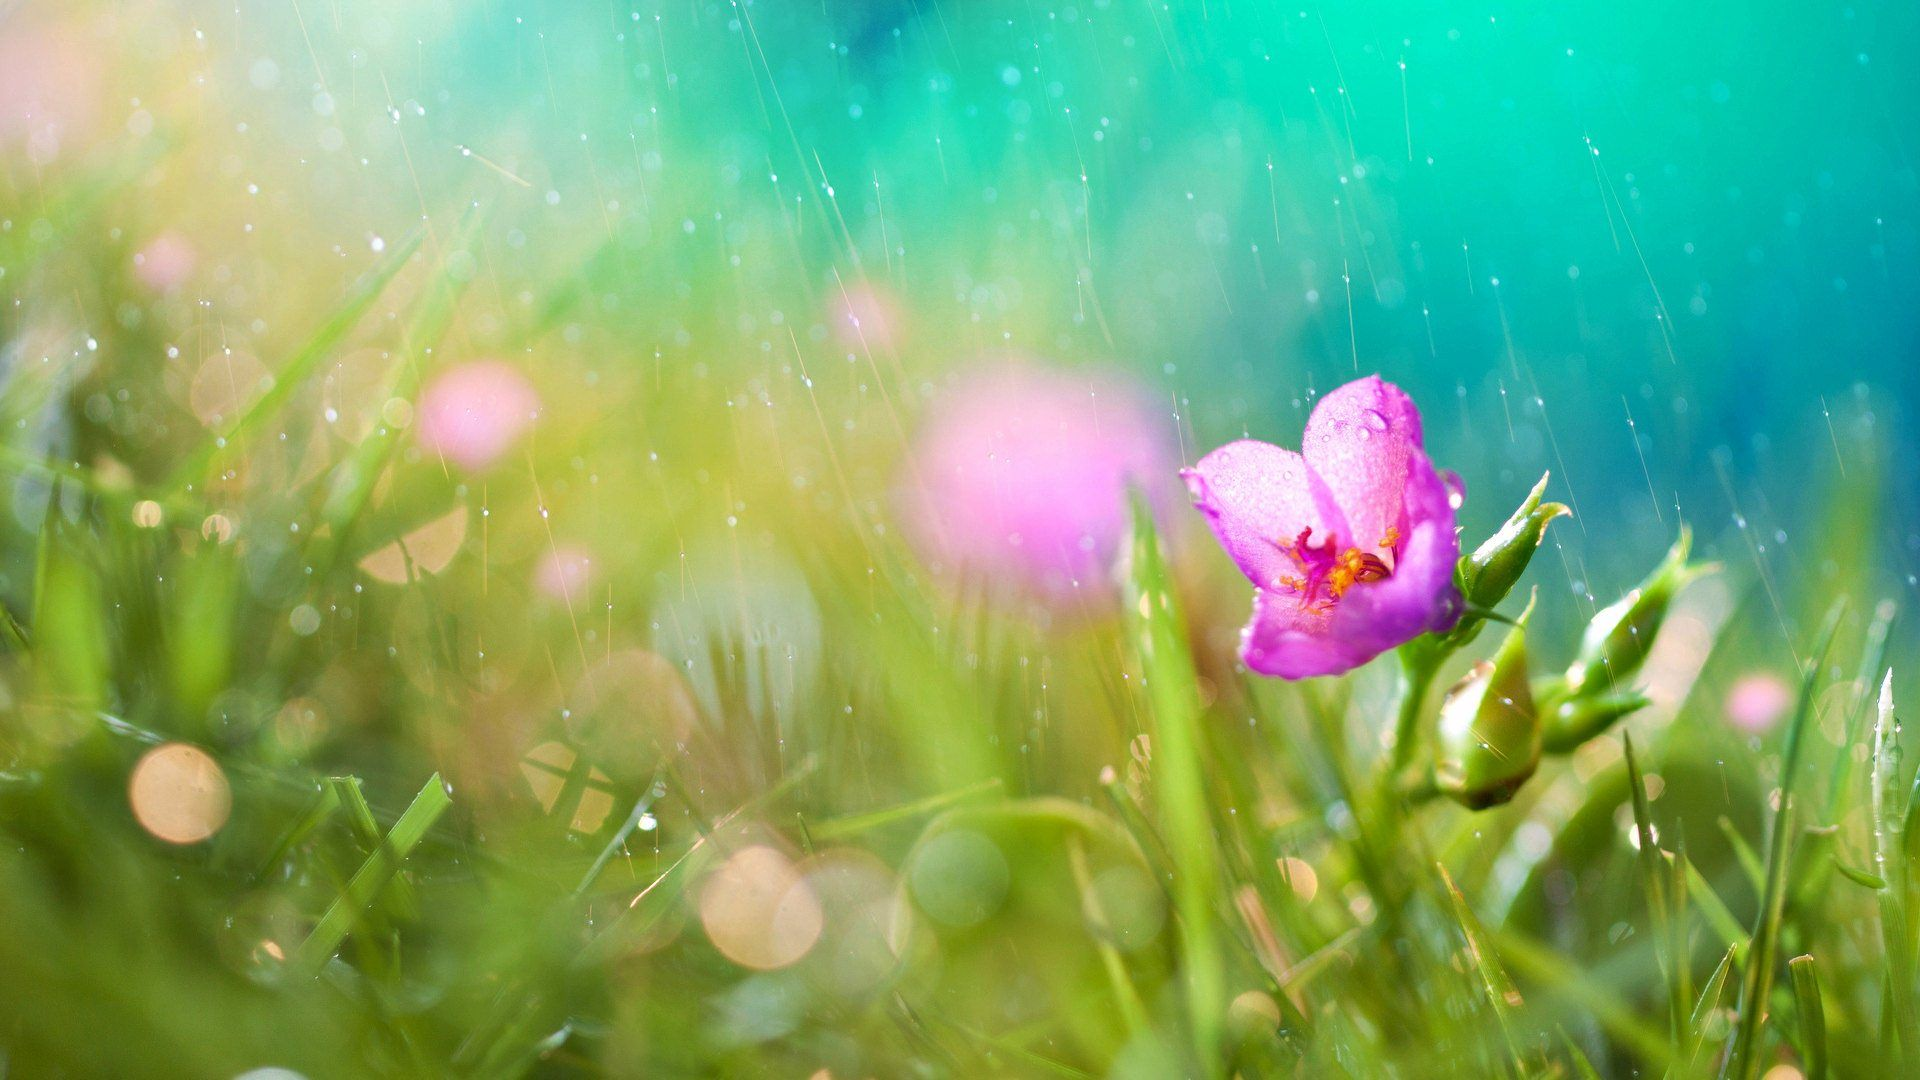 hd spring rains wallpaper - photo #13